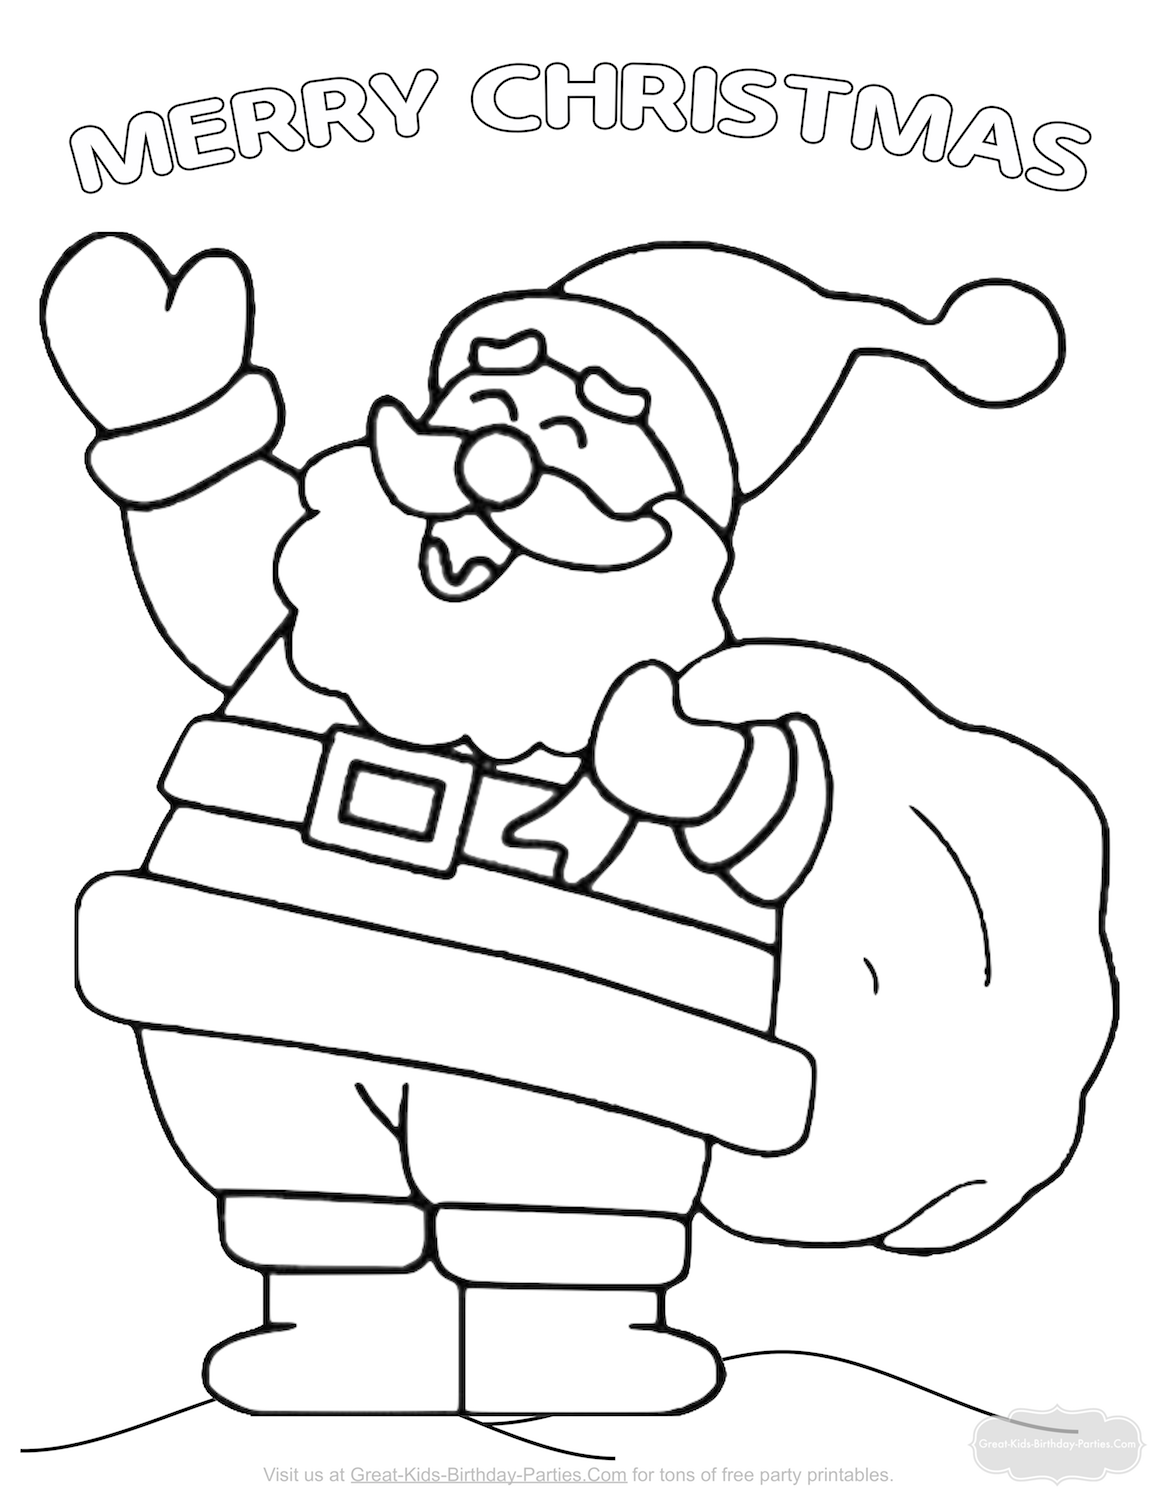 heres a beautiful santa coloring page with added graphics for more coloring fun click on image for download